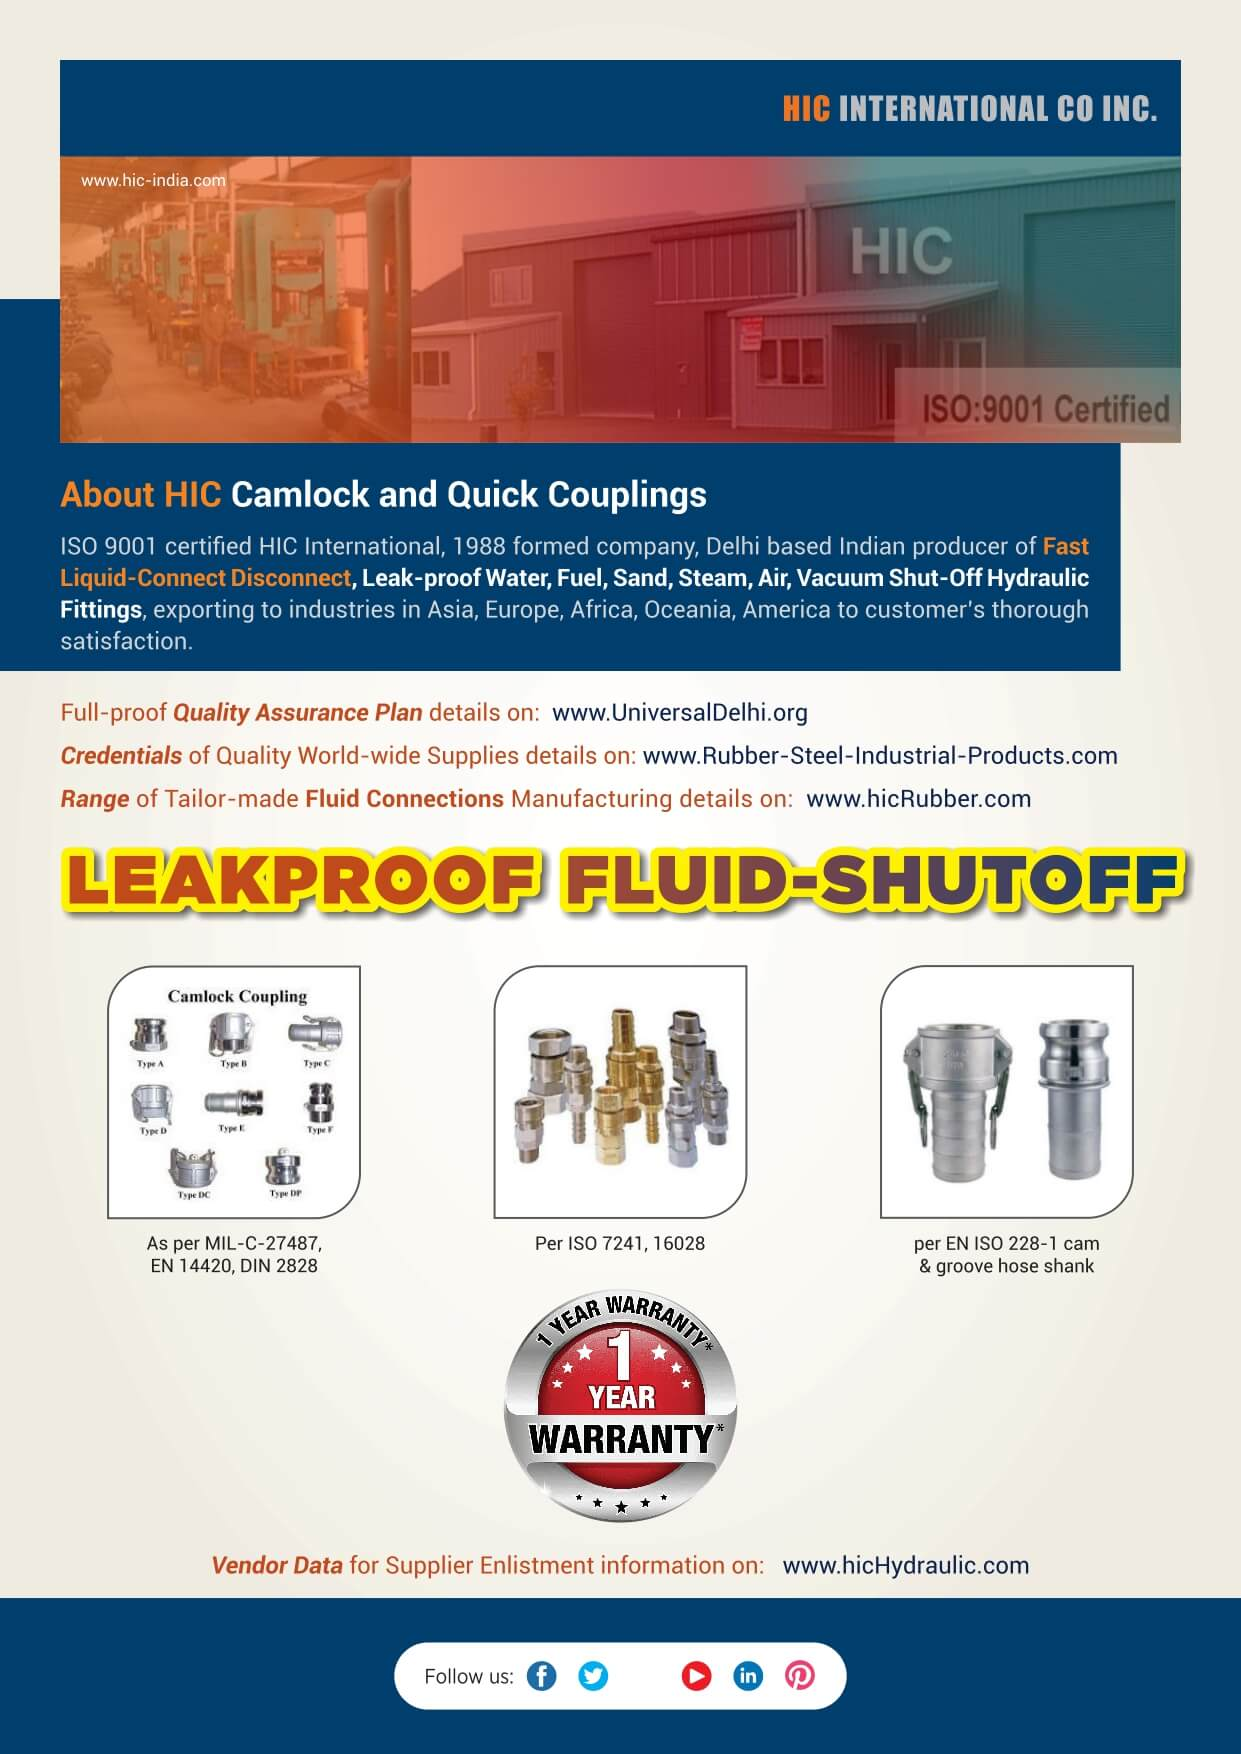 Literature-FITTING-Connector-Camlock-N-Quick-Couplings